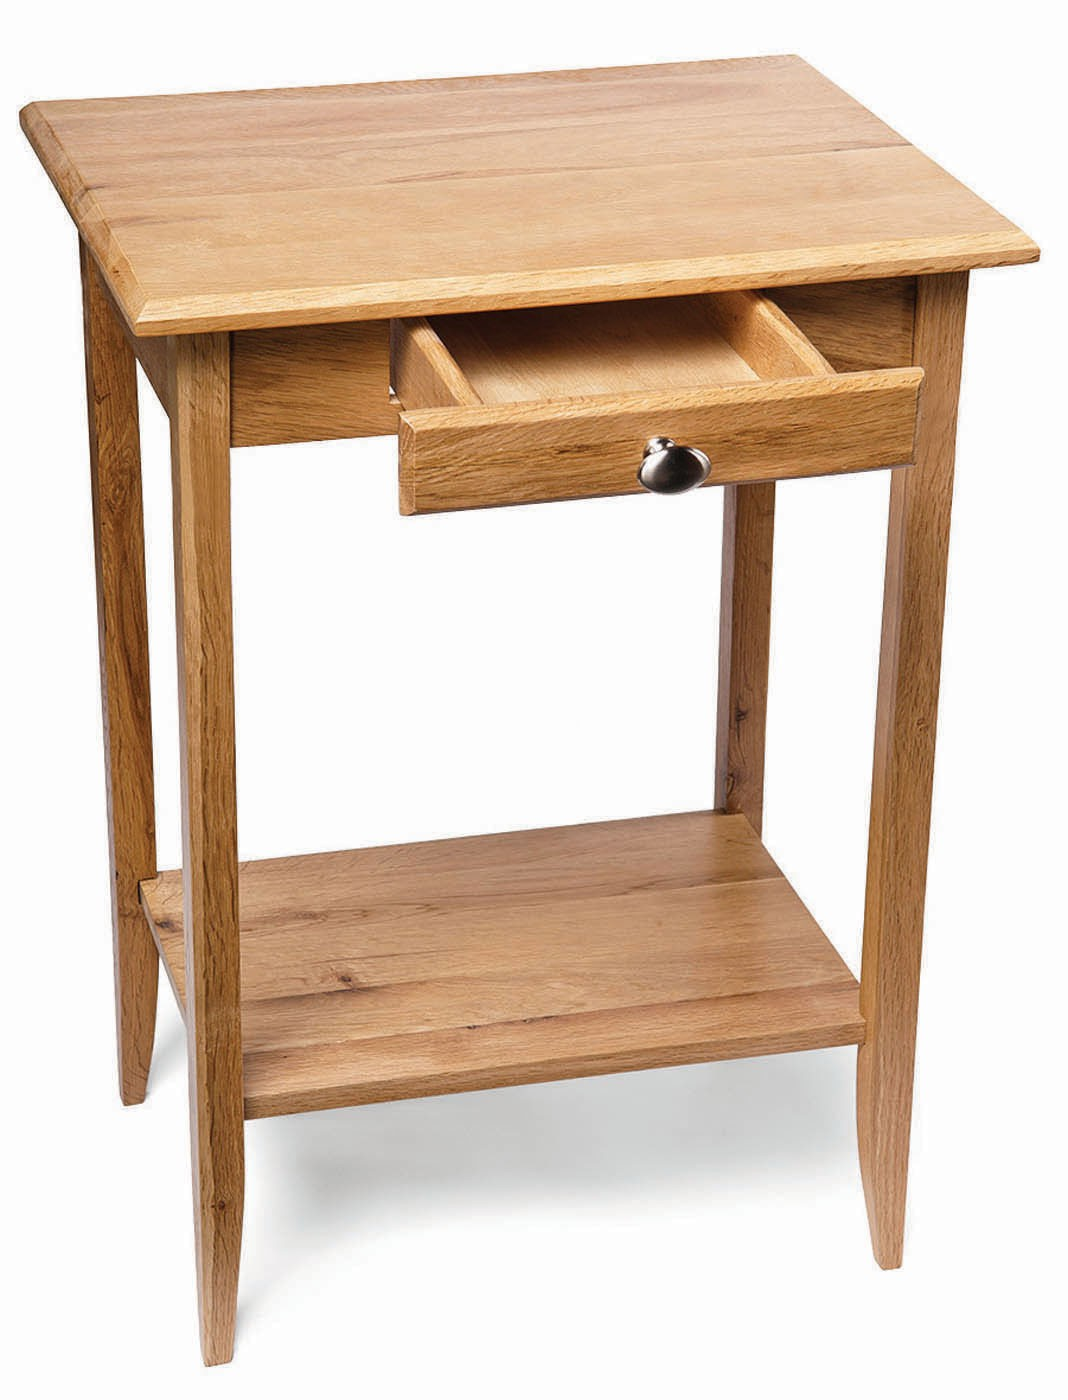 Small camberley light oak console table with drawers for Small console table with drawer